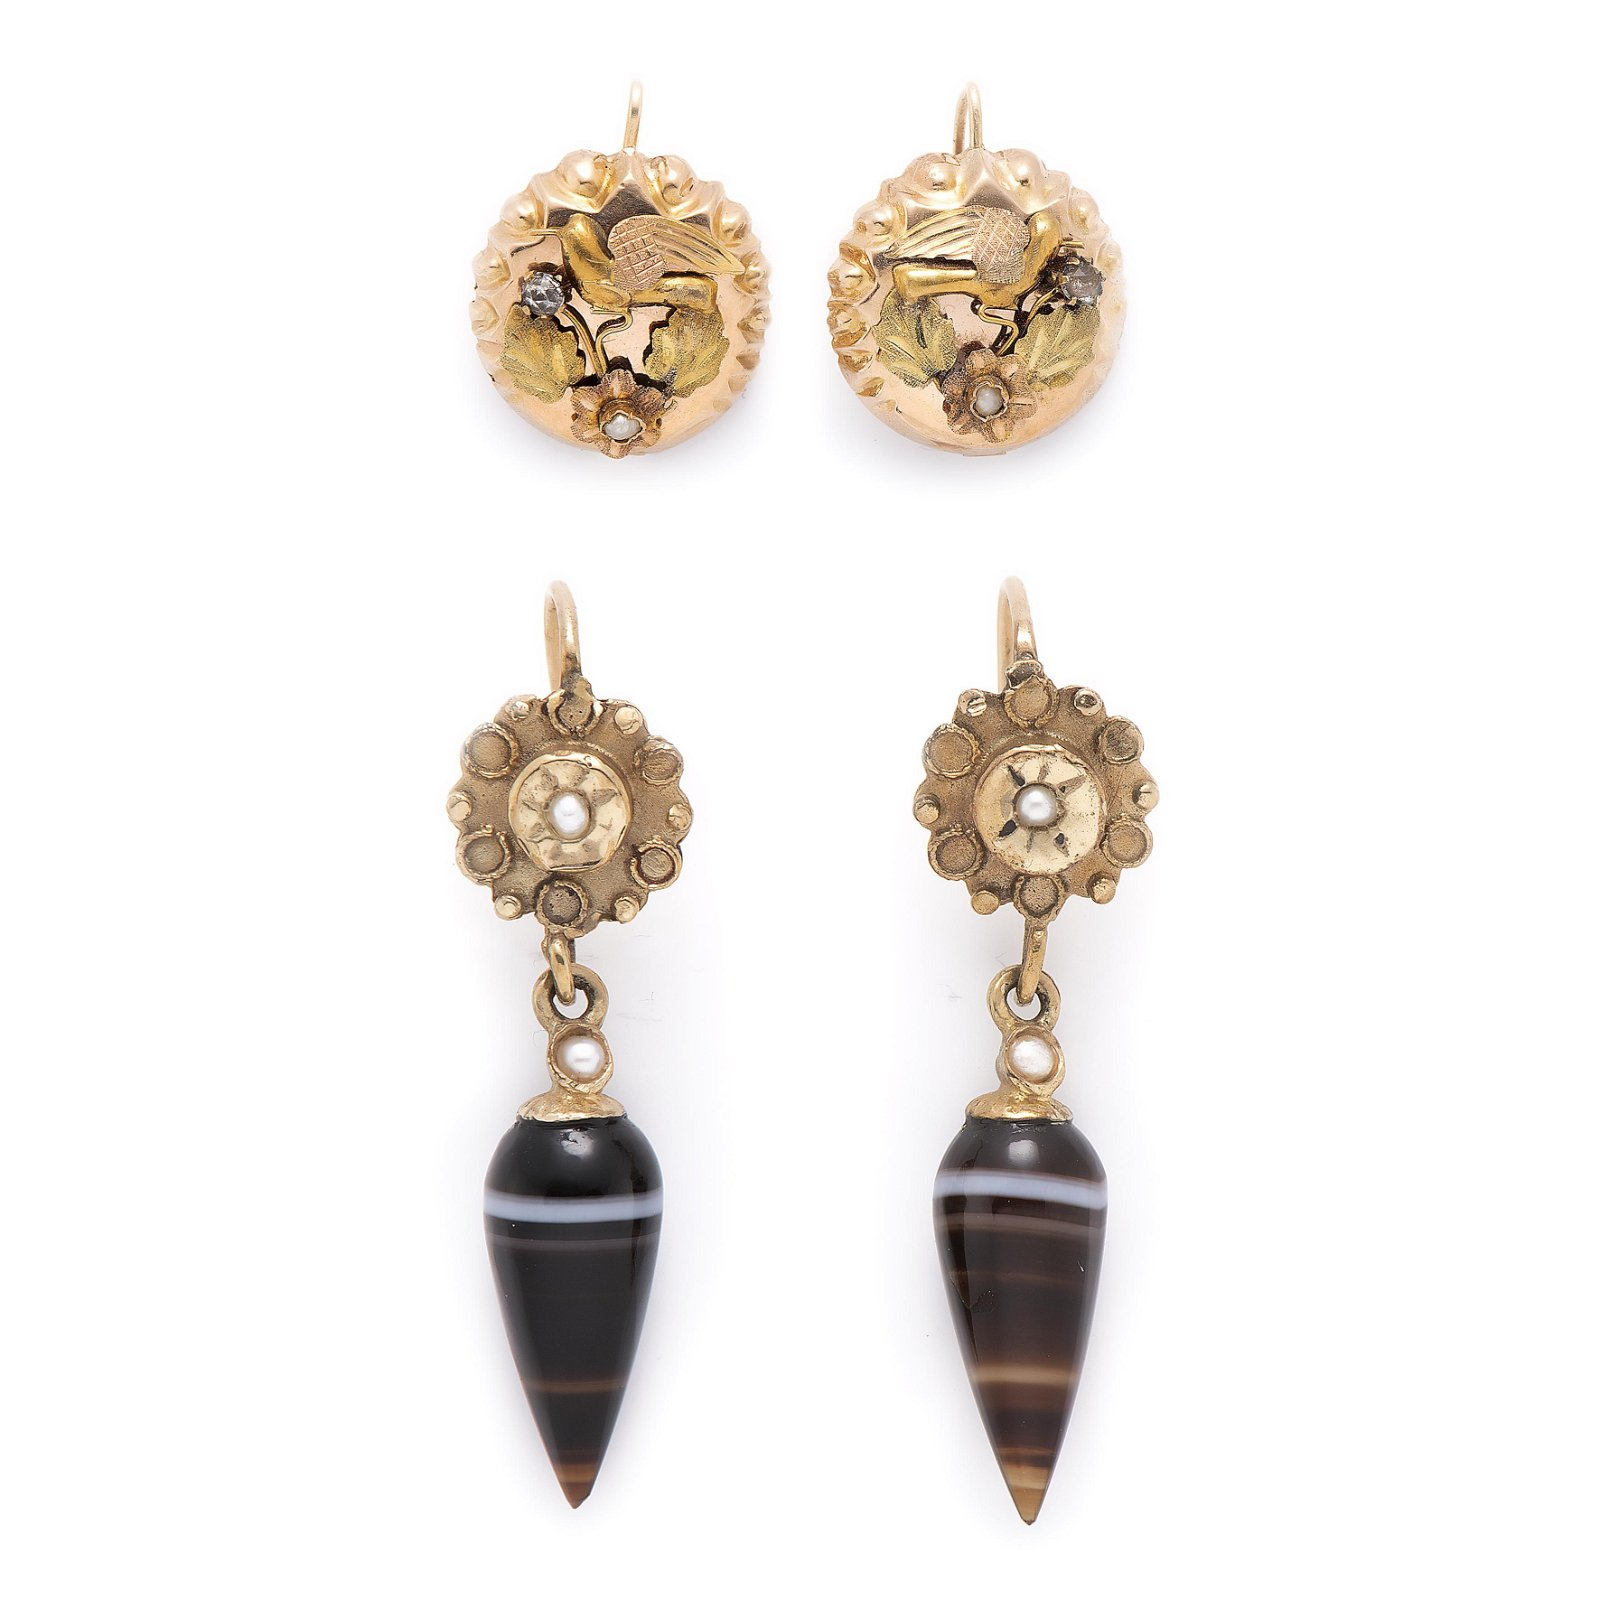 A pair of Victorian earrings.